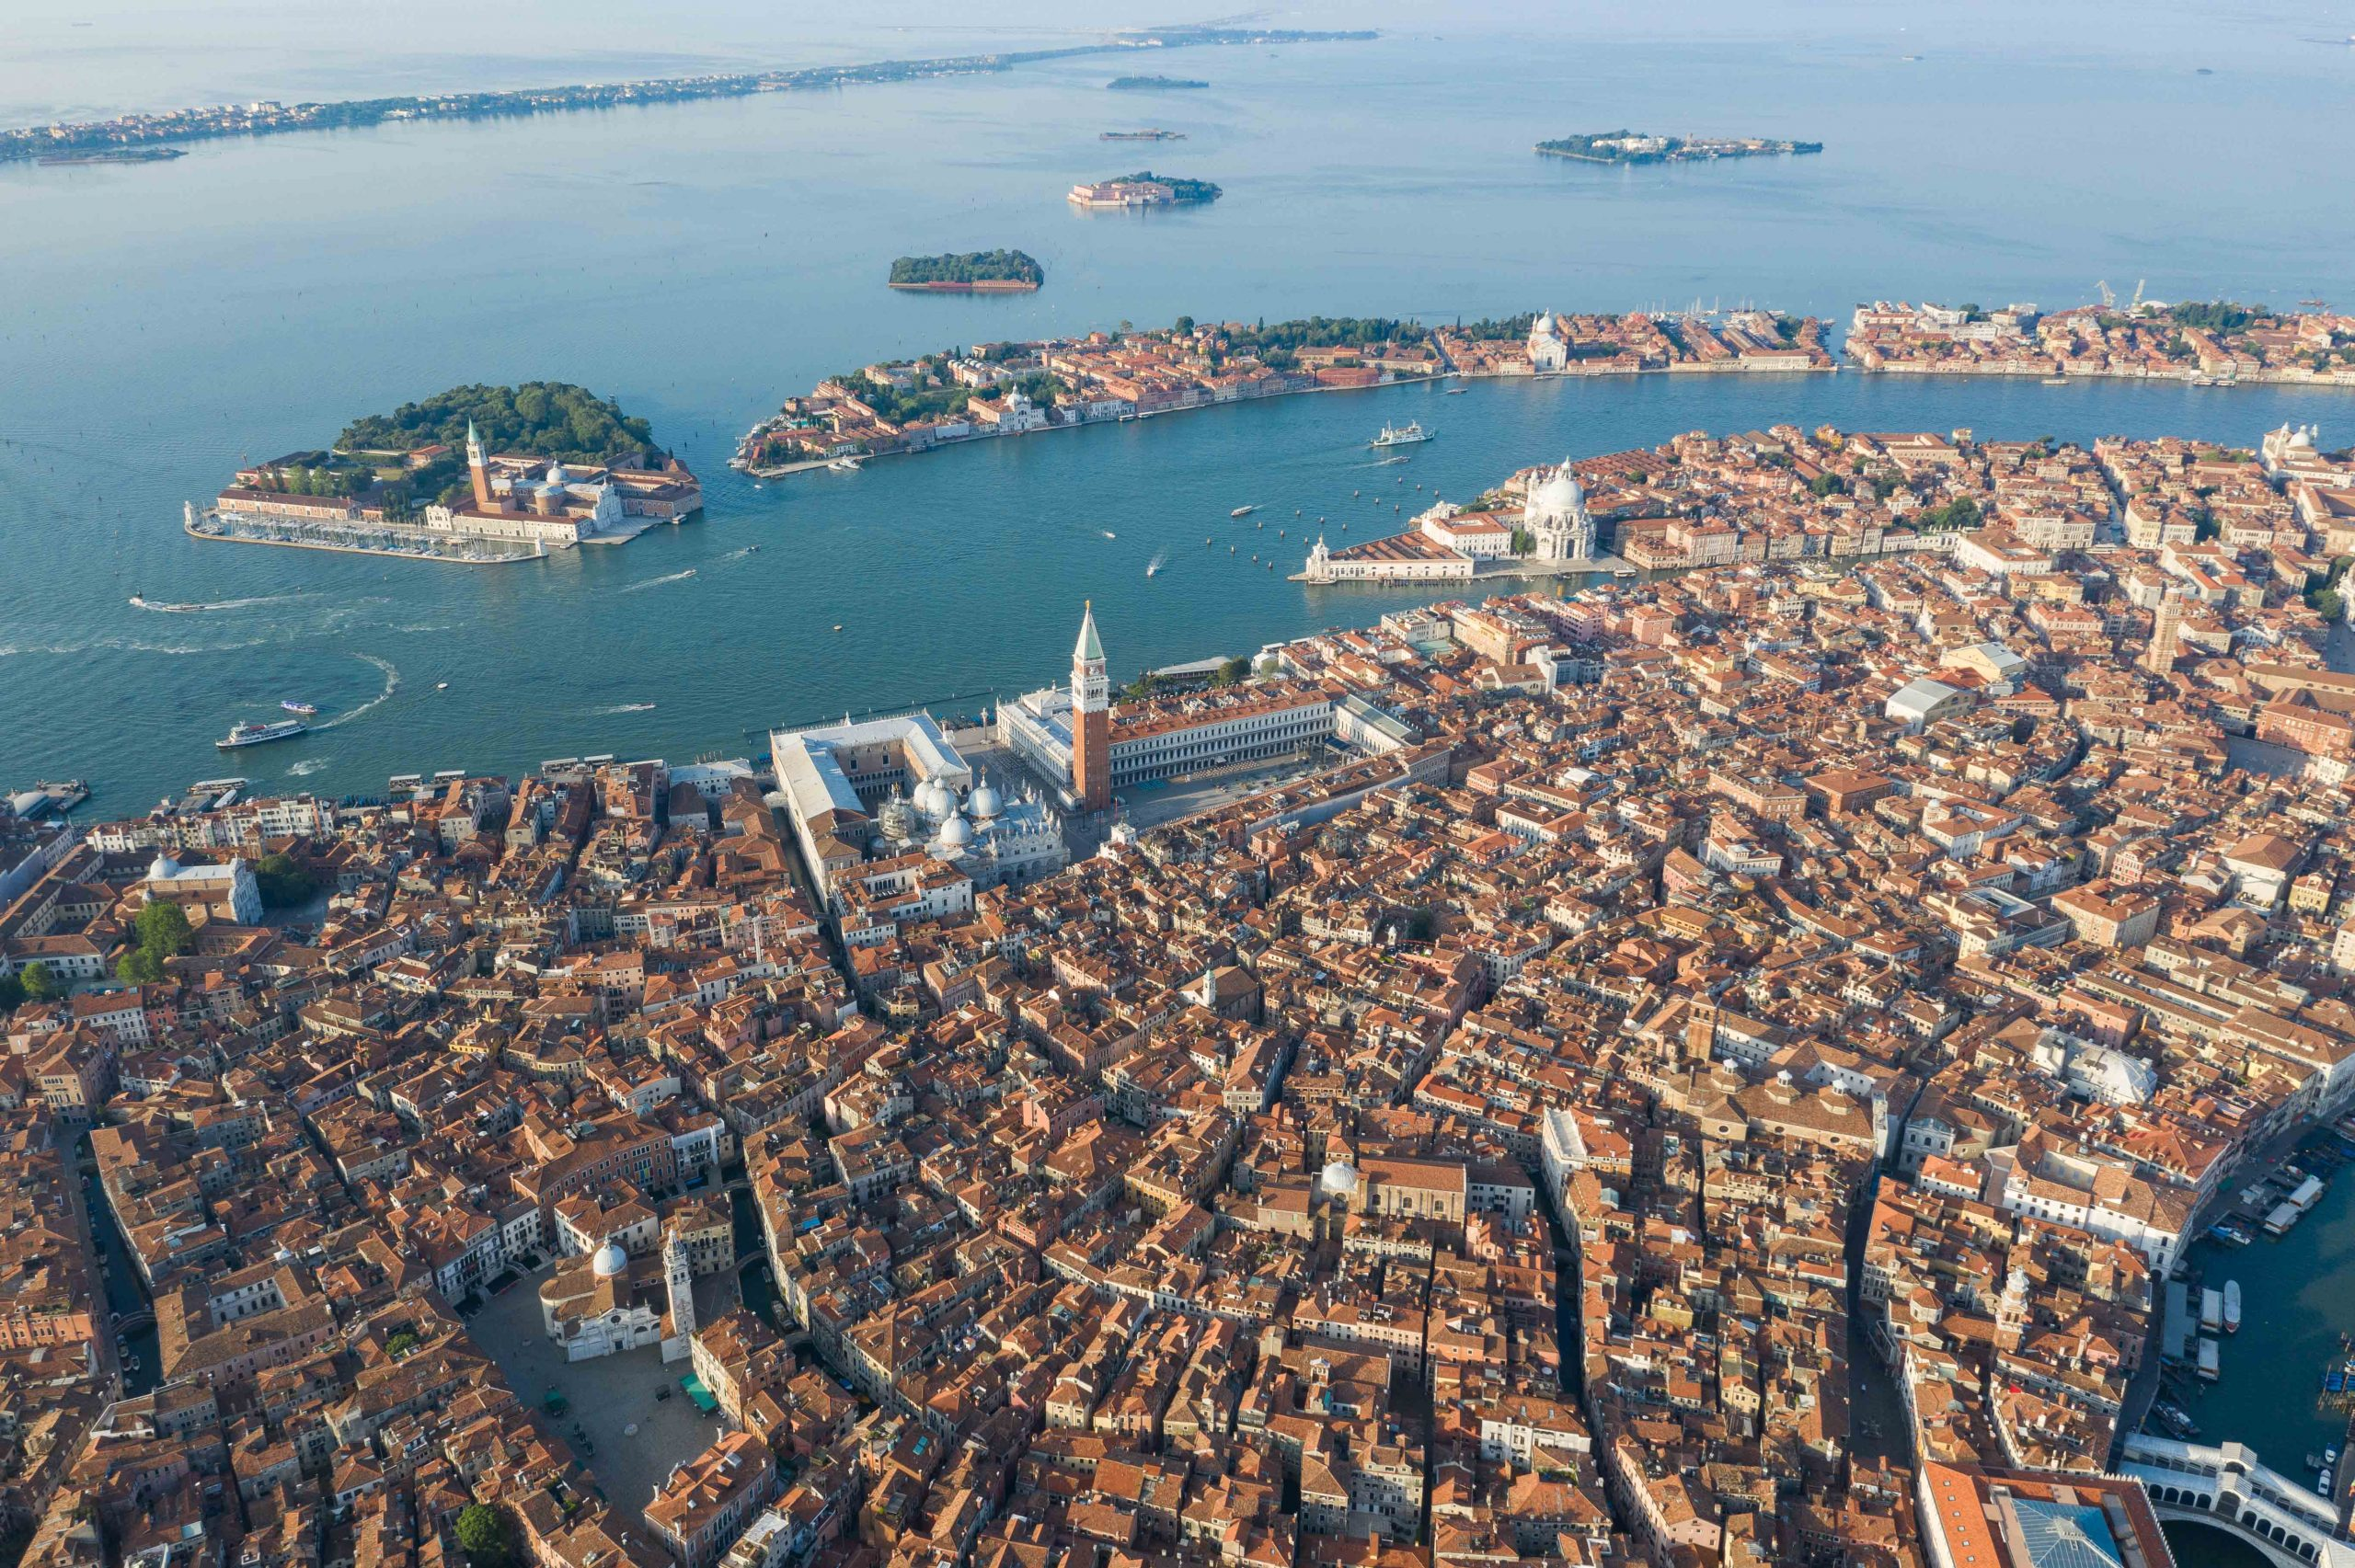 Venice from above.